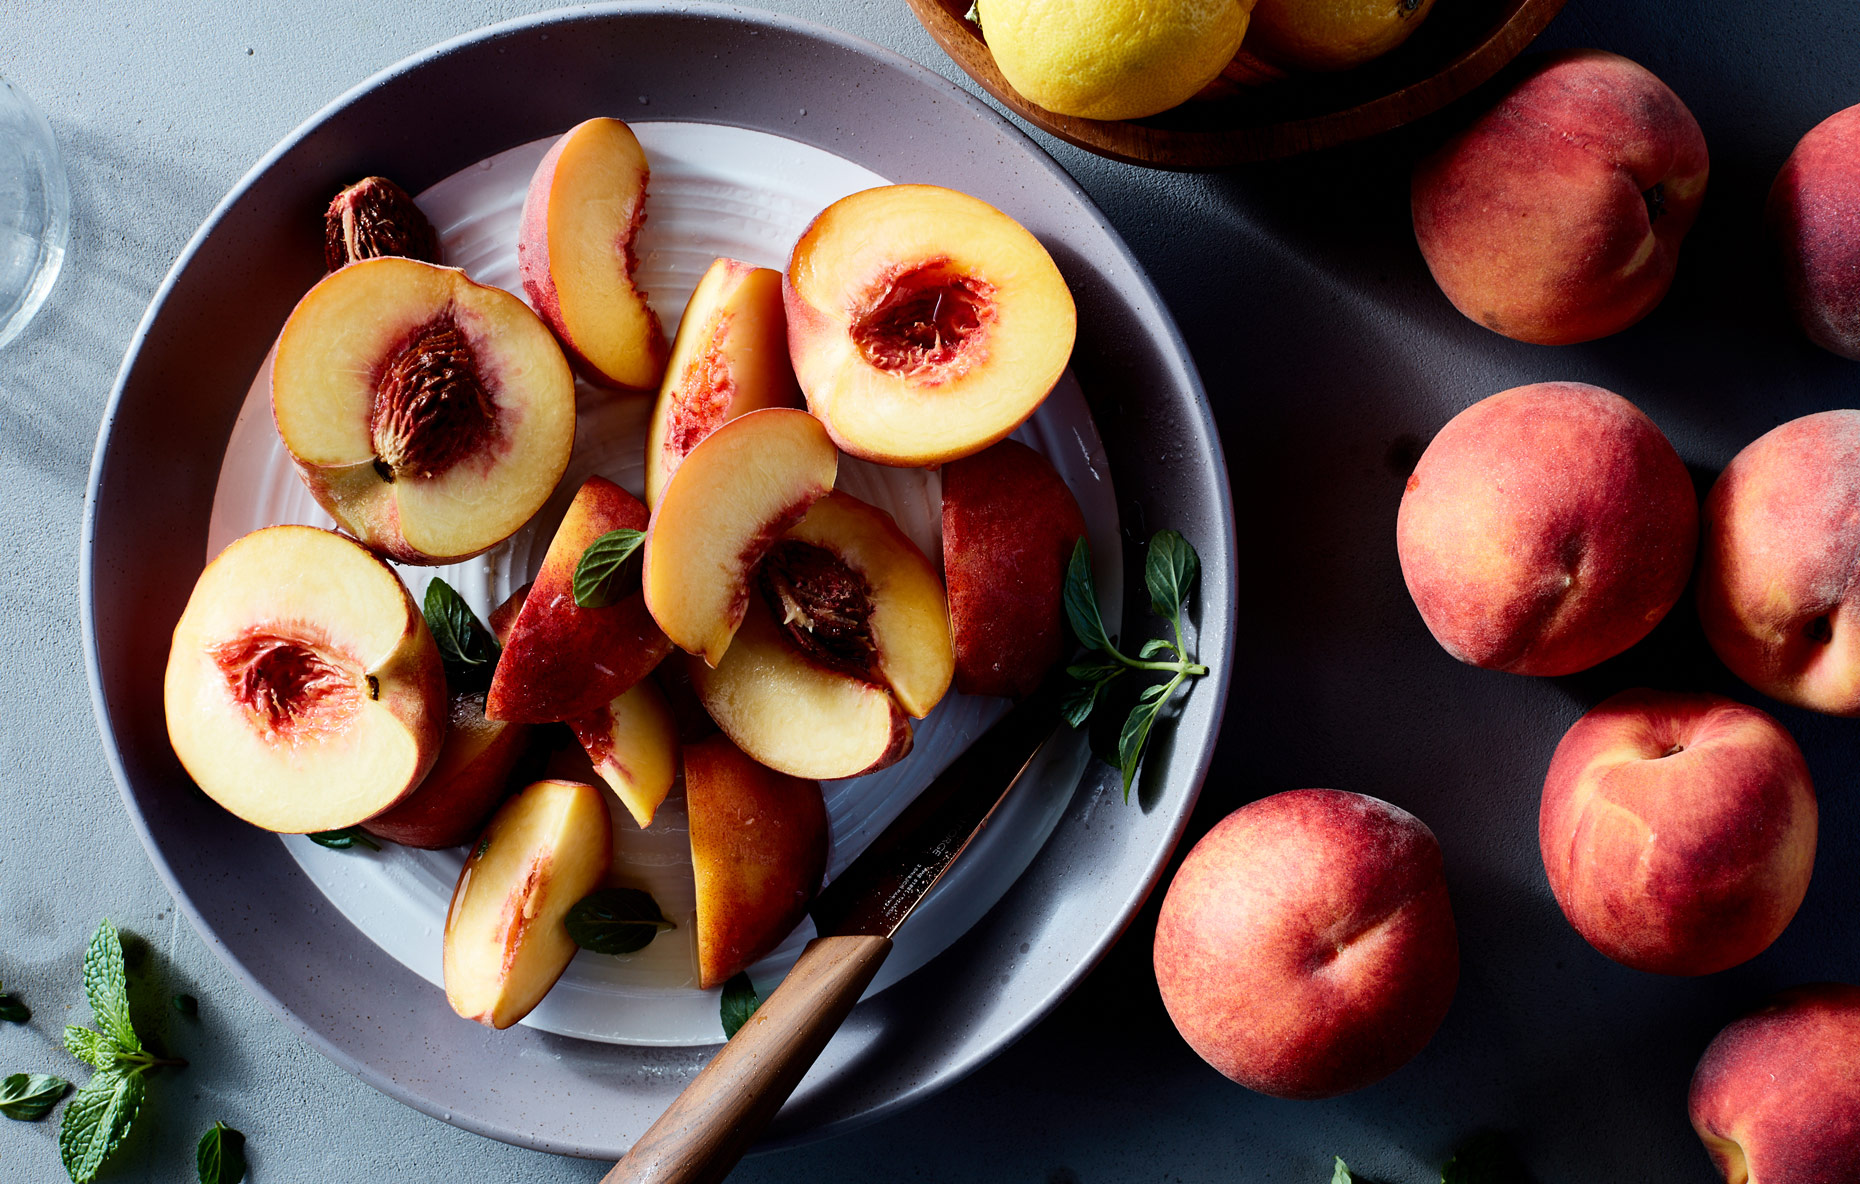 410705_peaches_styled_w_fruit_0675